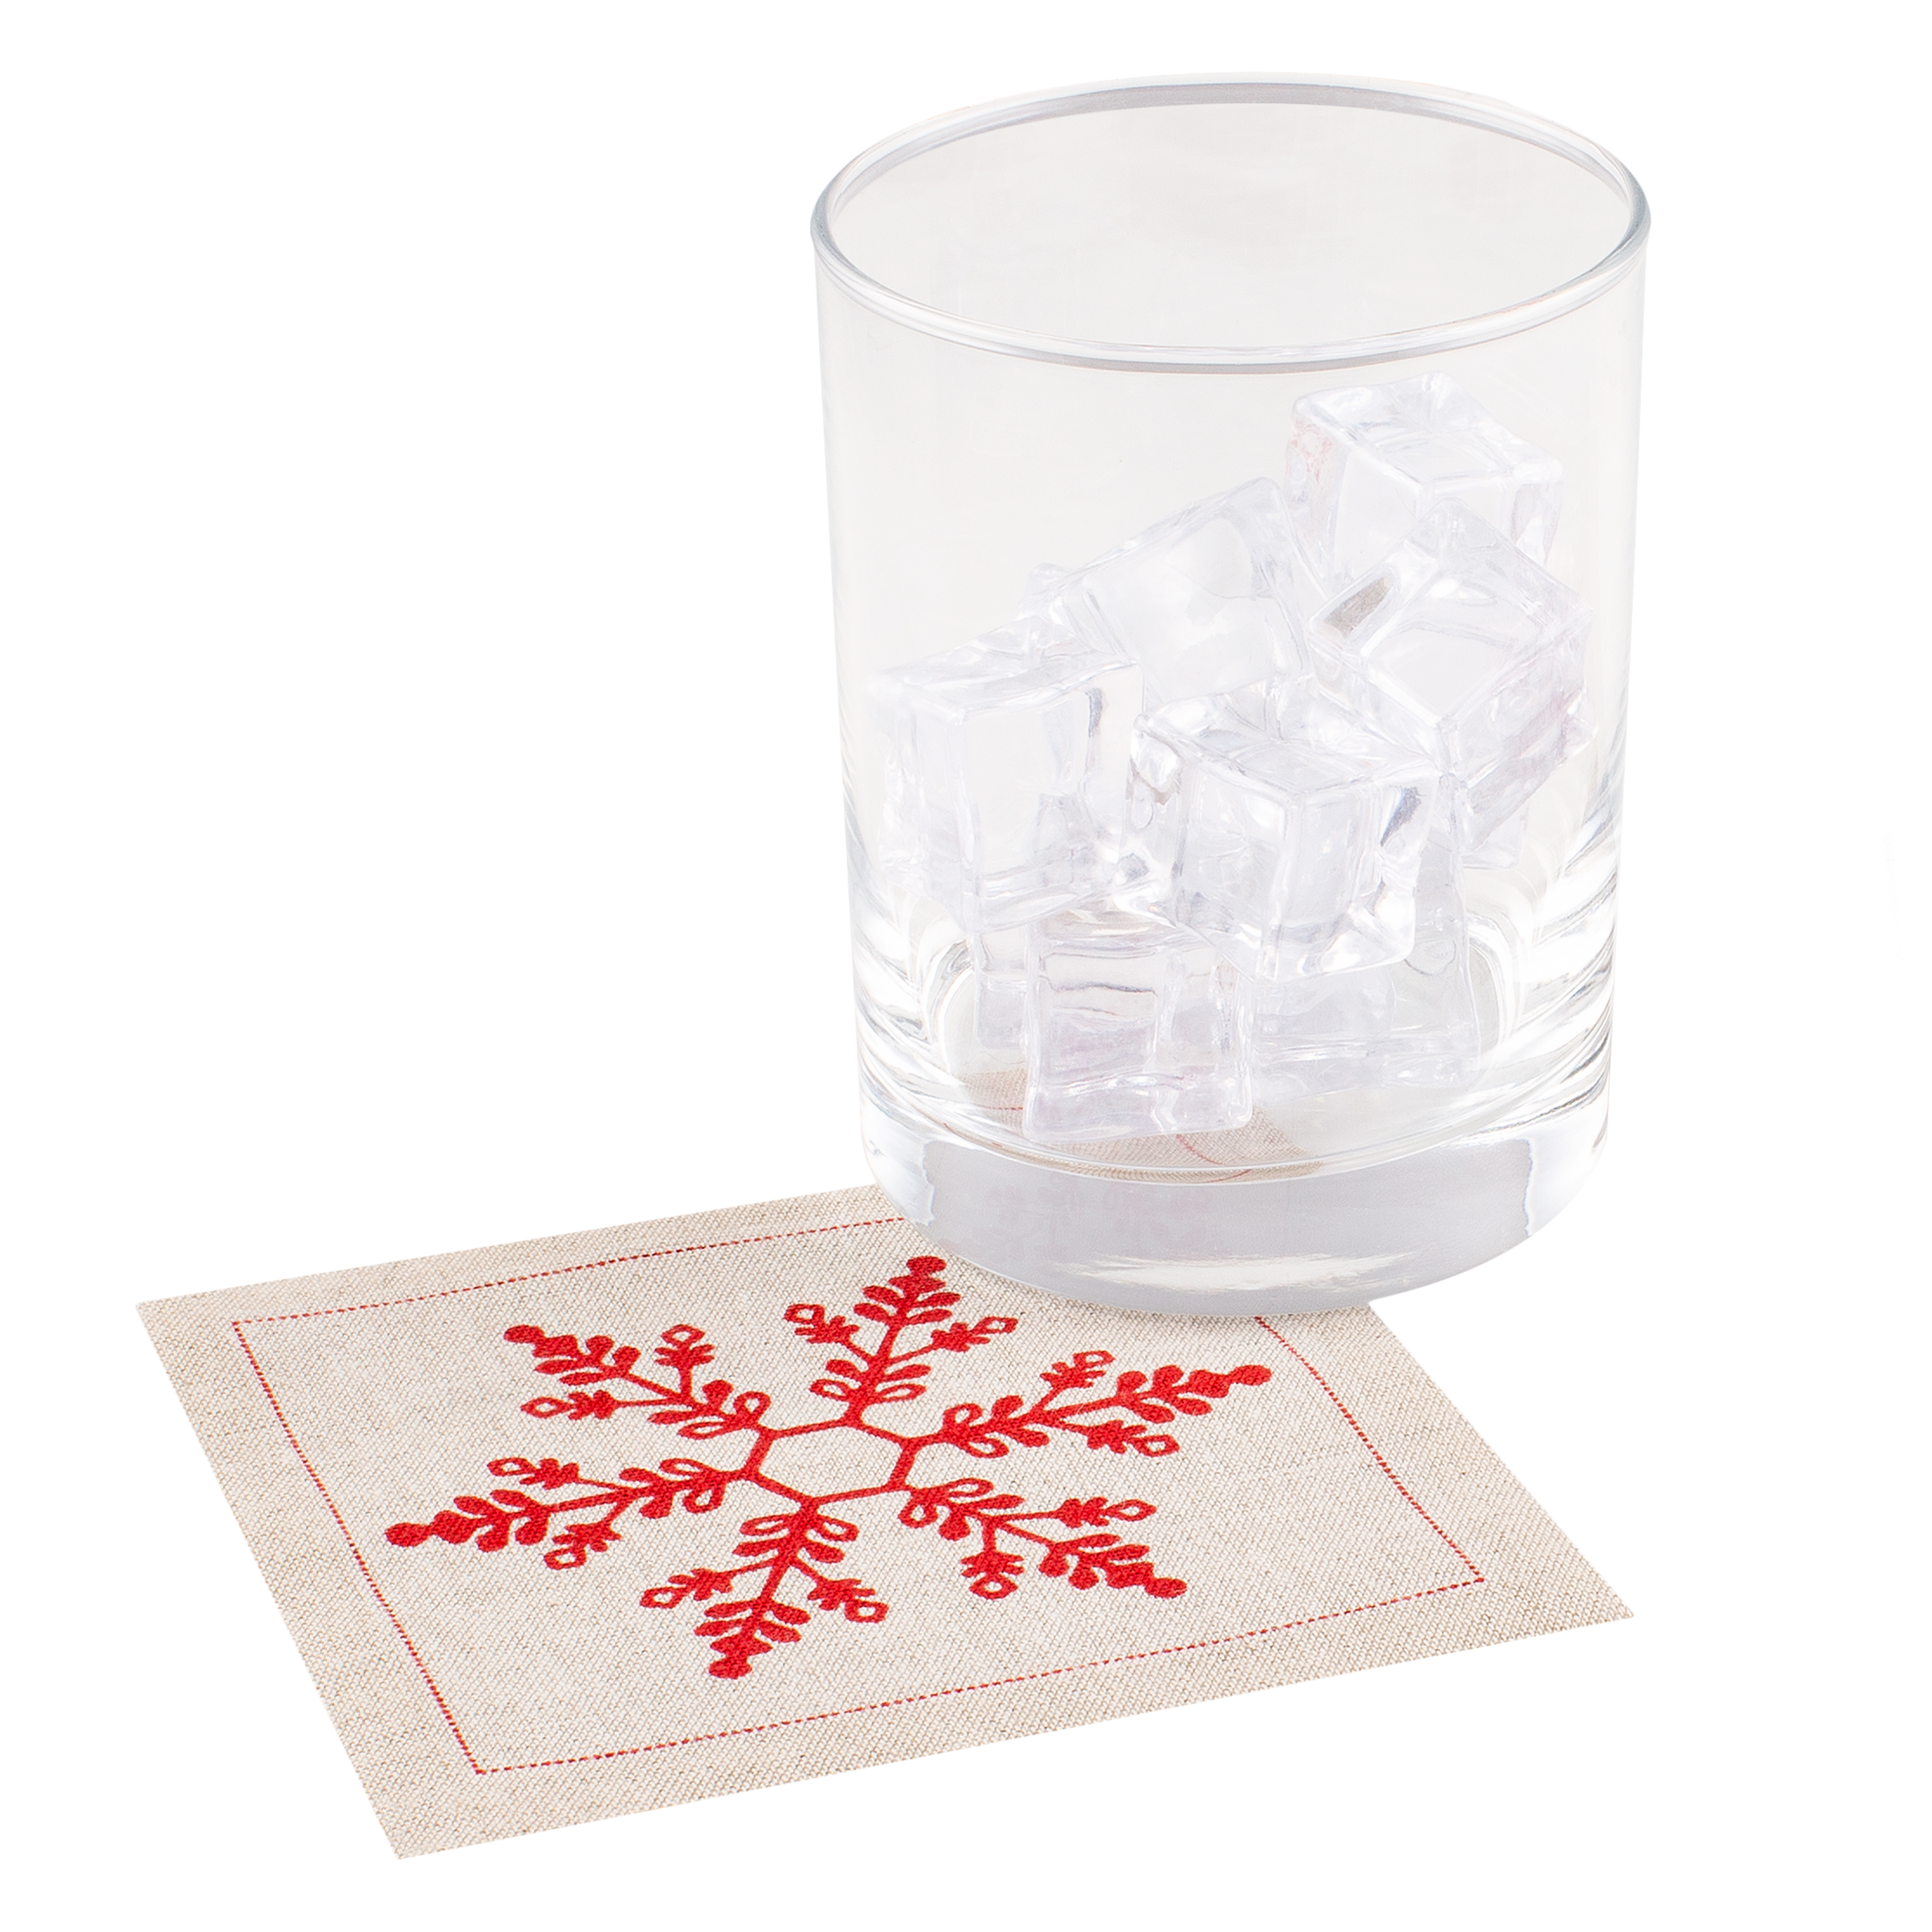 "Snowflake Natural Linen Cocktail - 4.5"" x 4.5"" - 1200 Units"